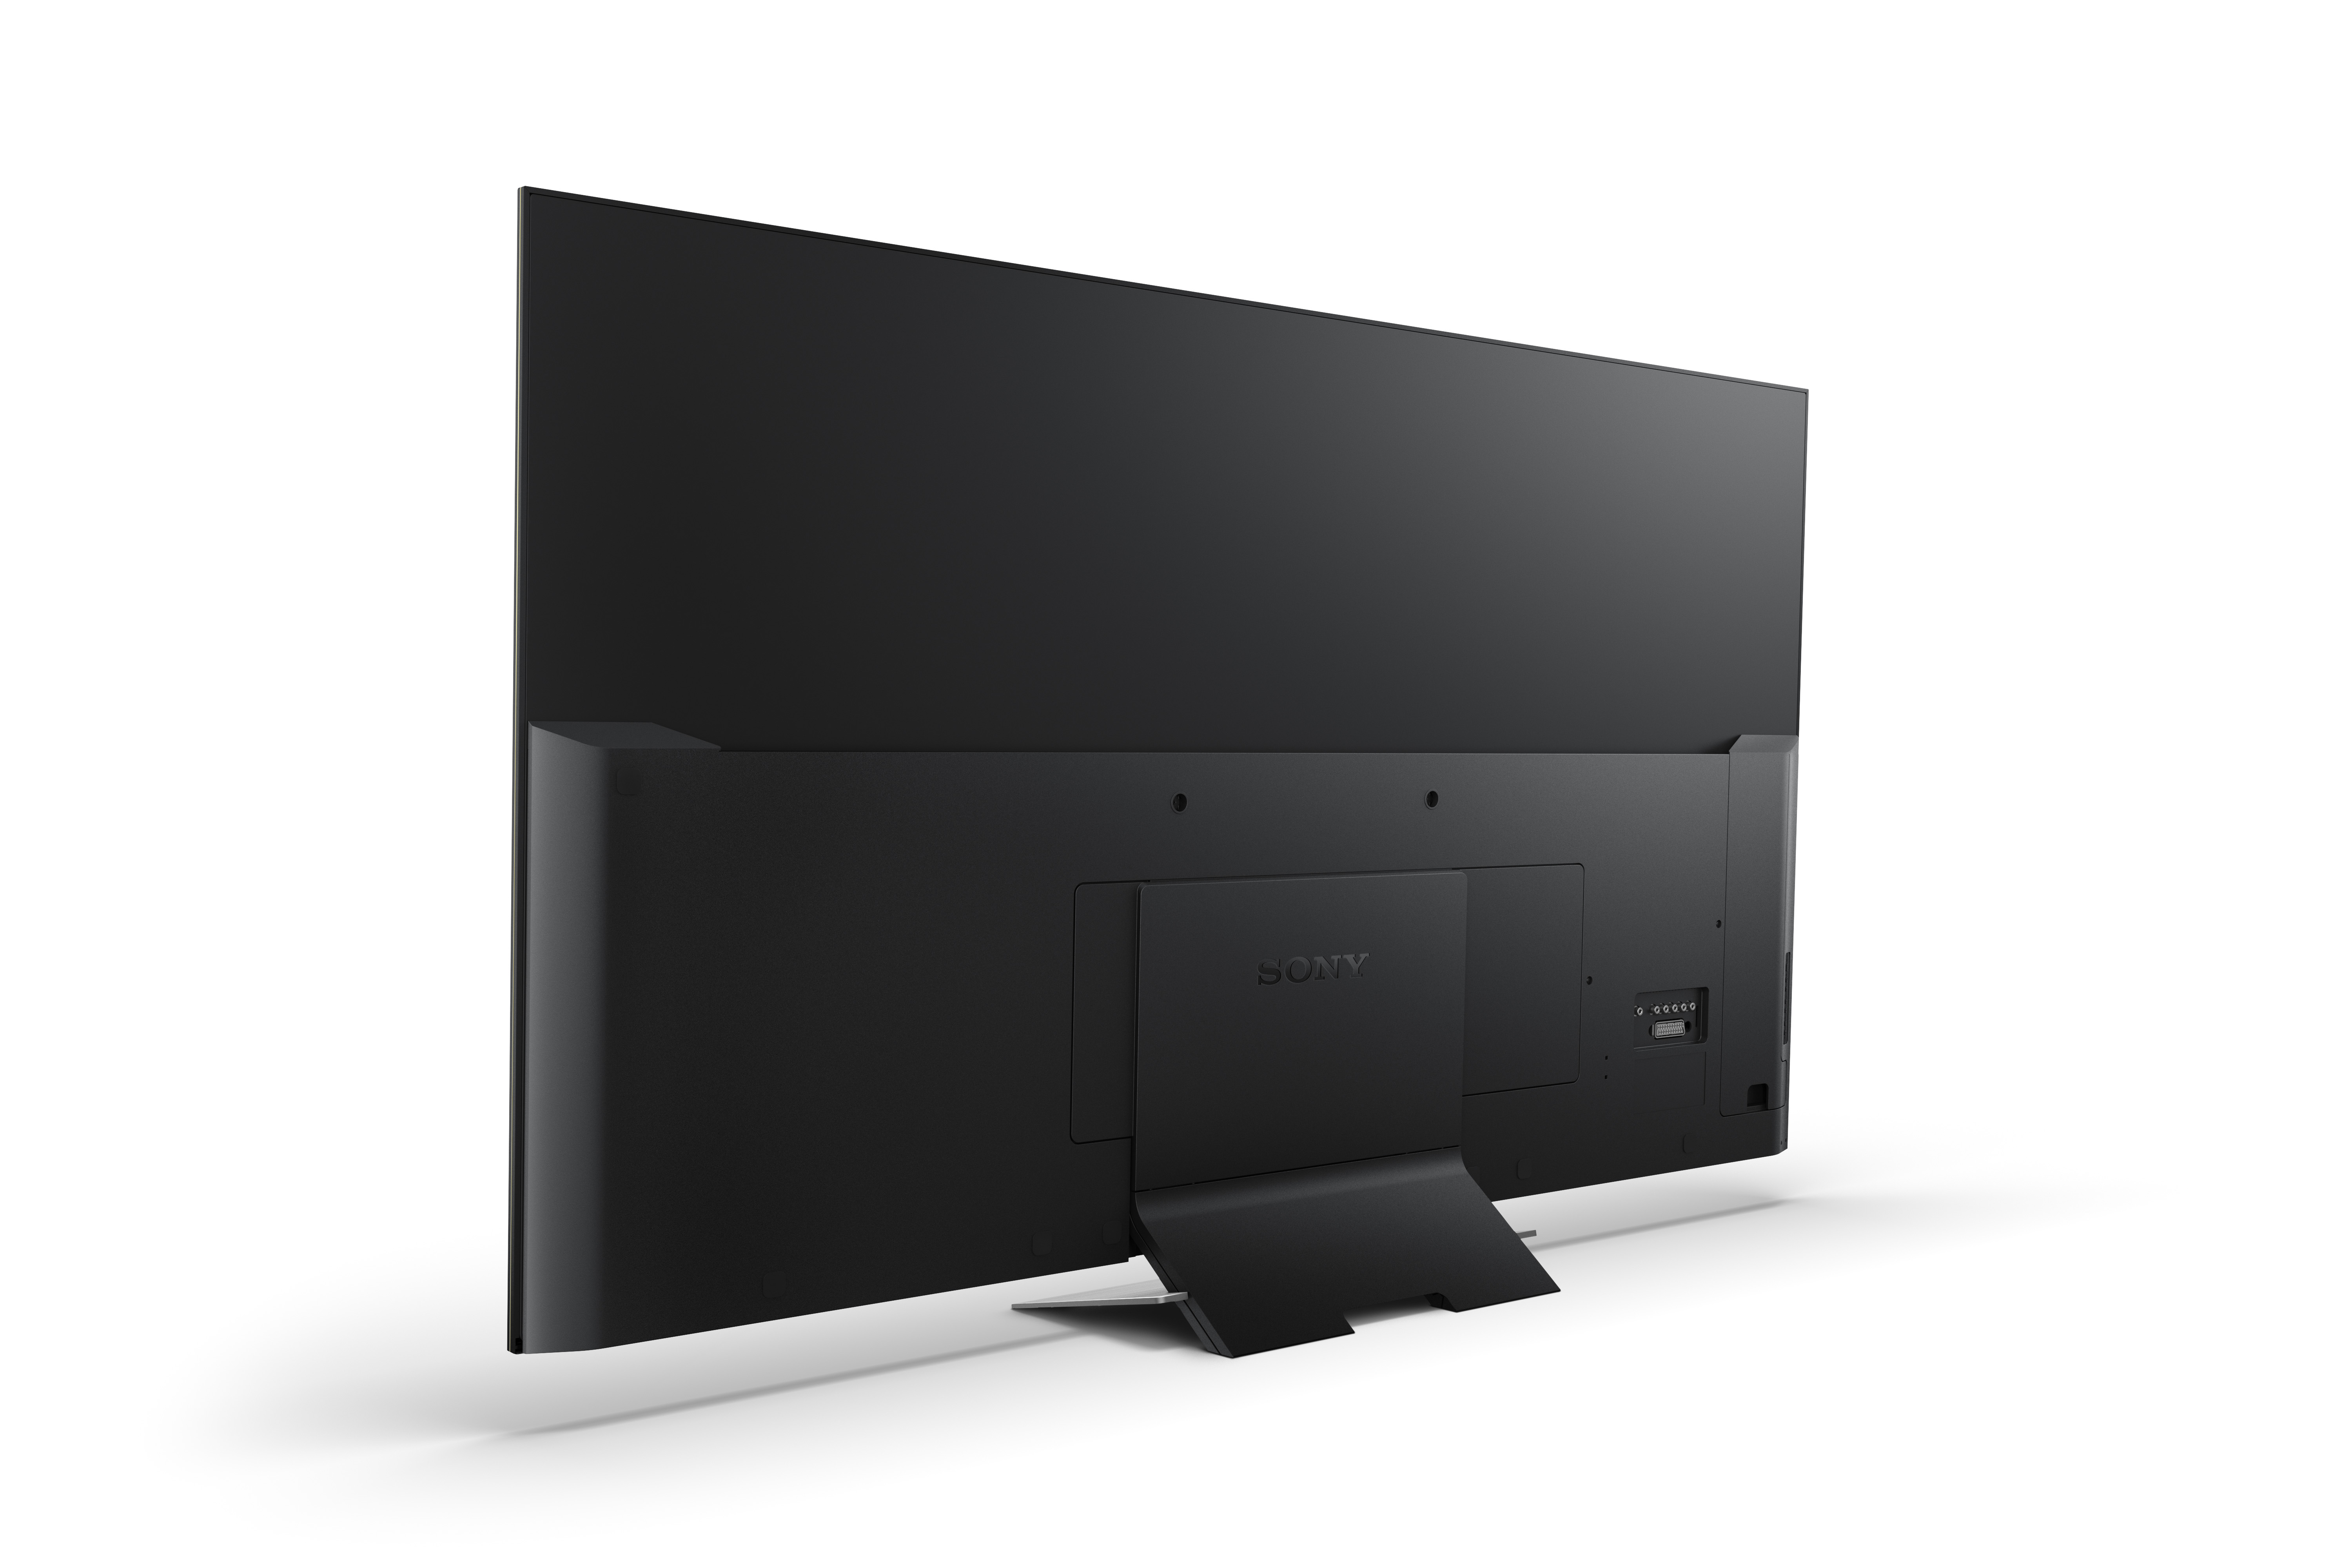 sony banks on hdr better contrast in 2016 bravia 4k tvs. Black Bedroom Furniture Sets. Home Design Ideas